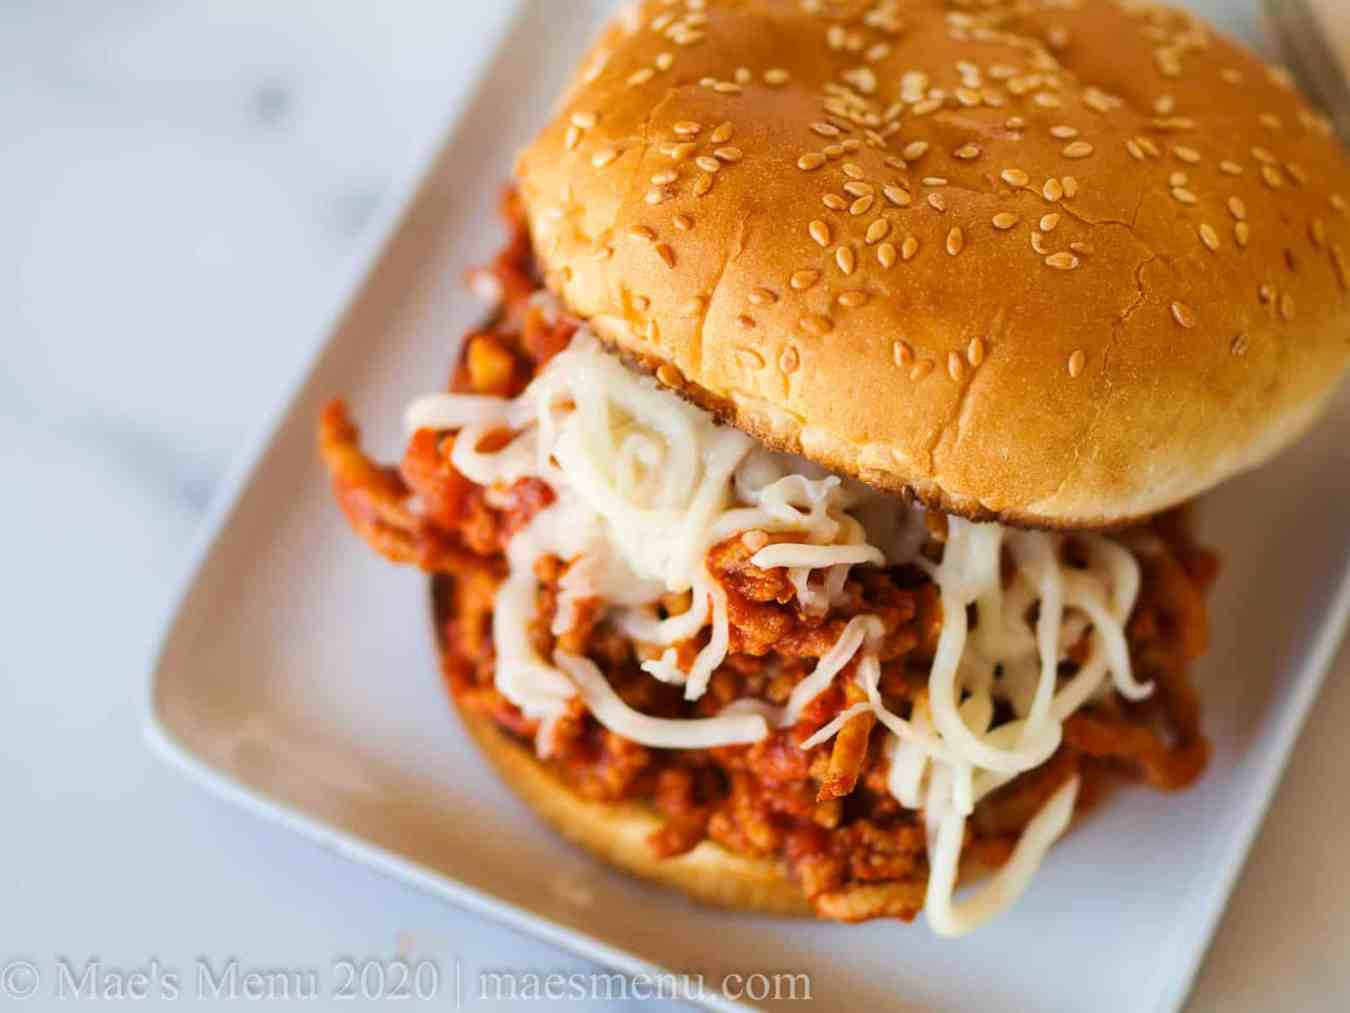 A sloppy joe with shredded cheese on top on a white plate.